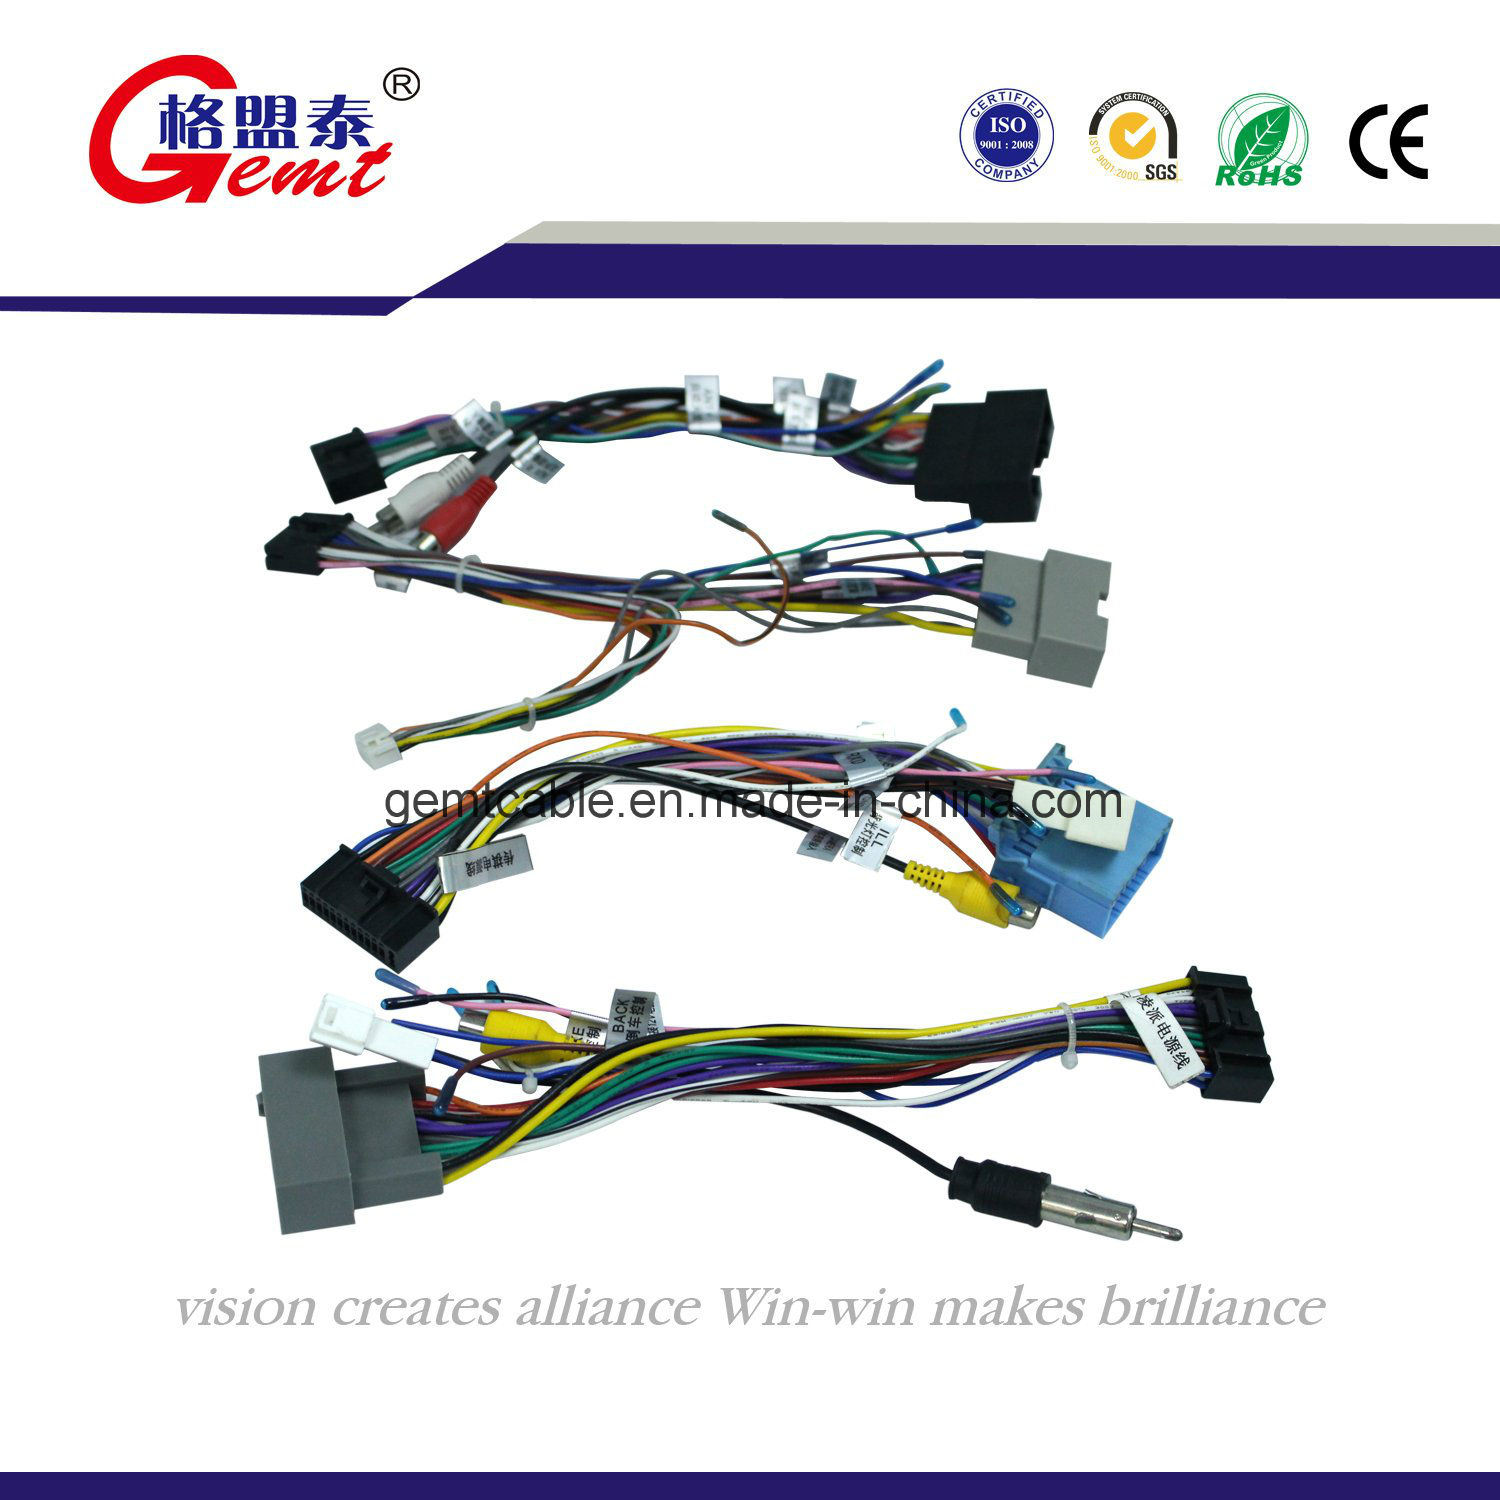 China Compass Power Wire Harness Controlling Car Using Connector Electric Auto Cable Battery